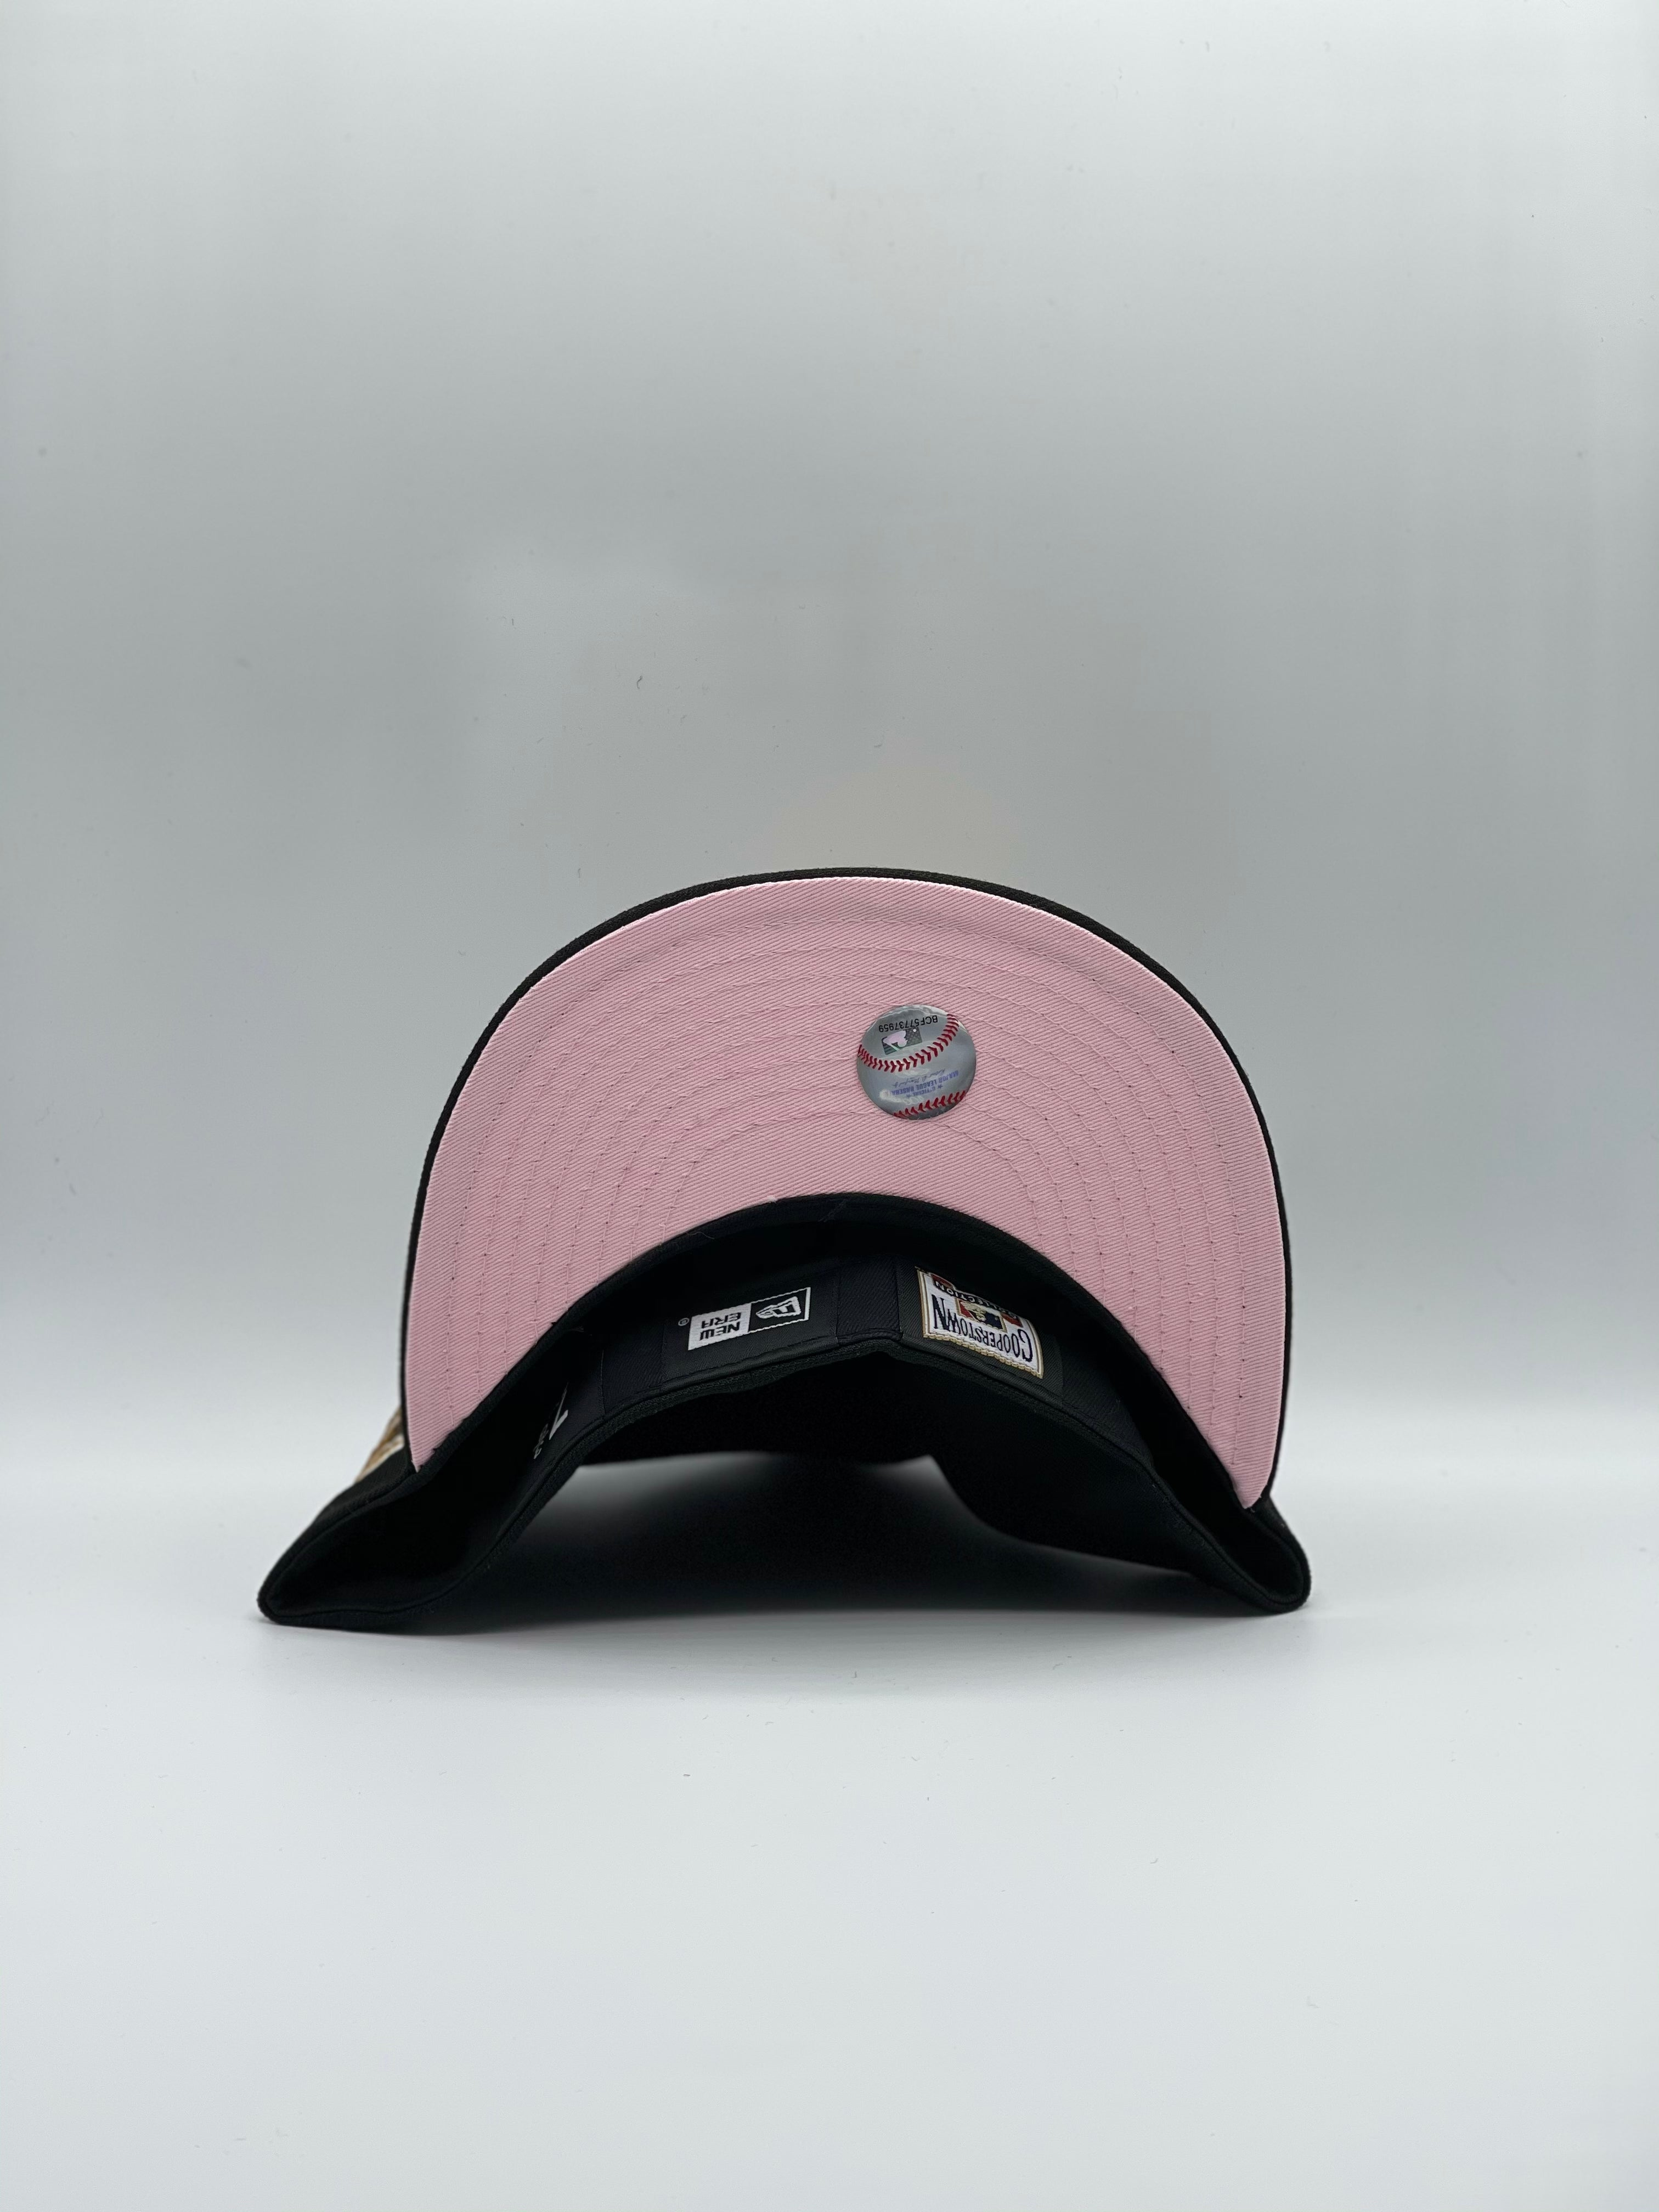 PITTSBURGH PIRATES x 1959 ASG NEW ERA 59FIFTY (PINK UV)